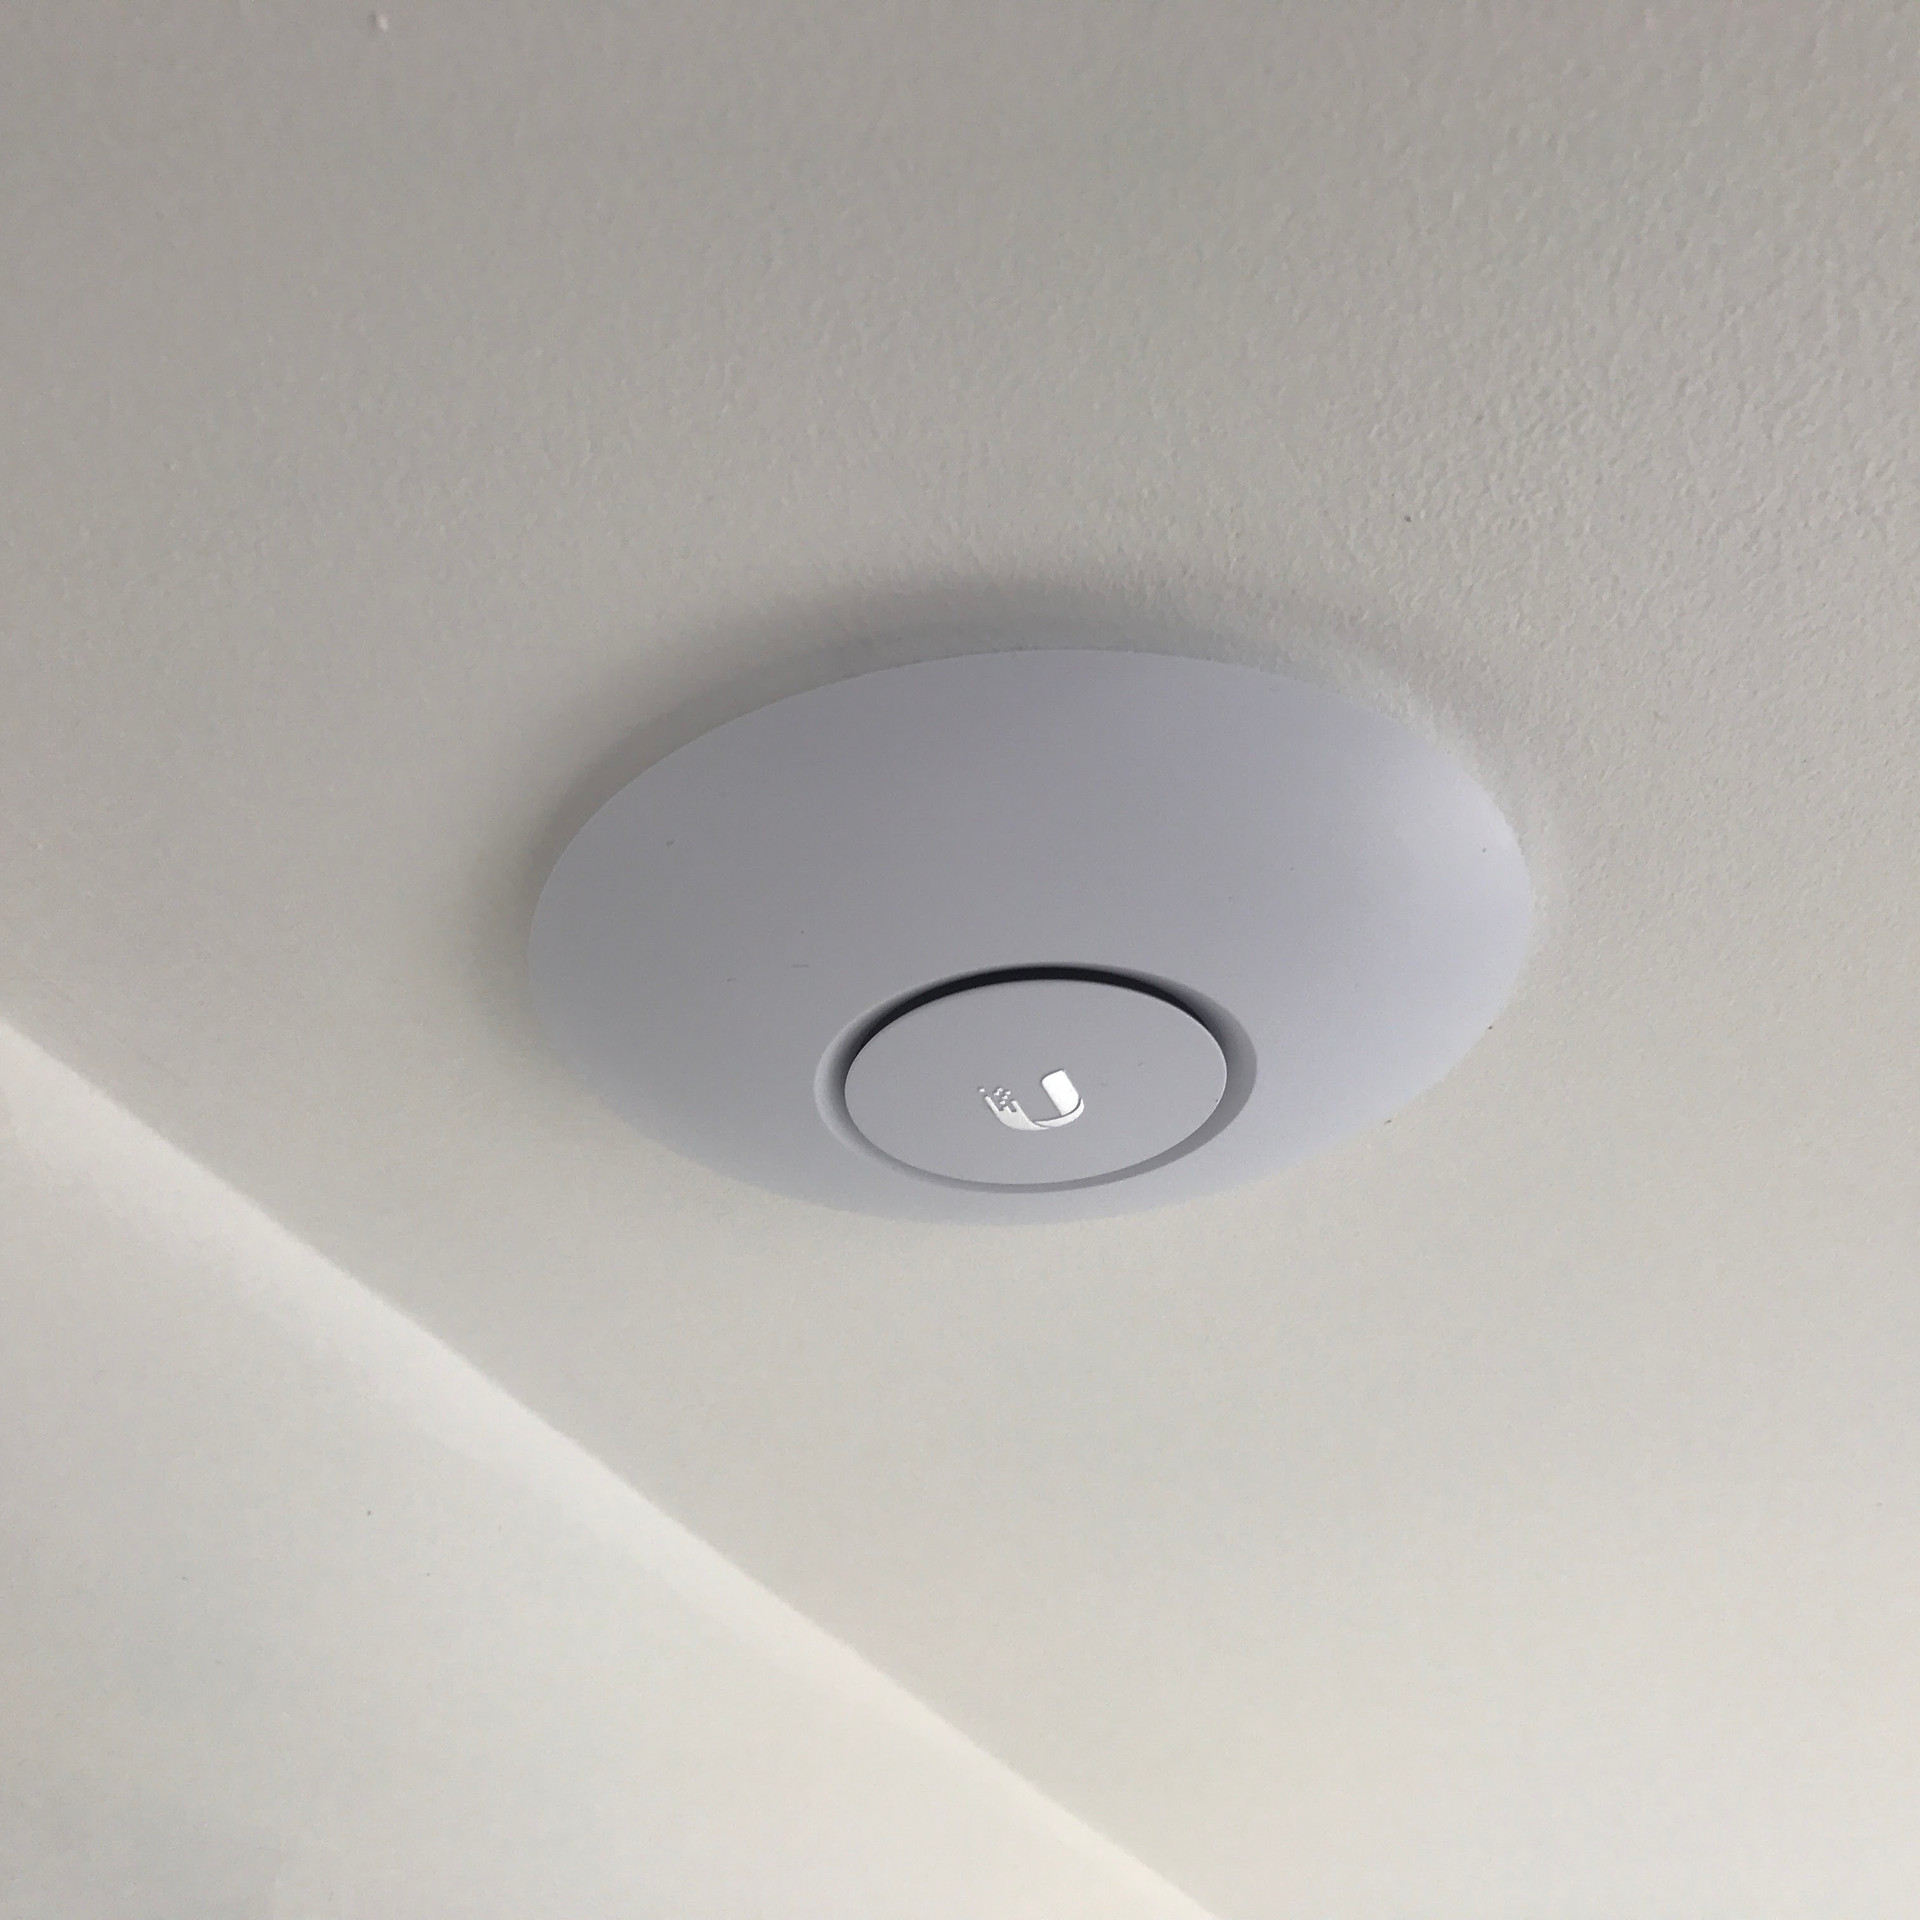 Wi-Fi Access Point